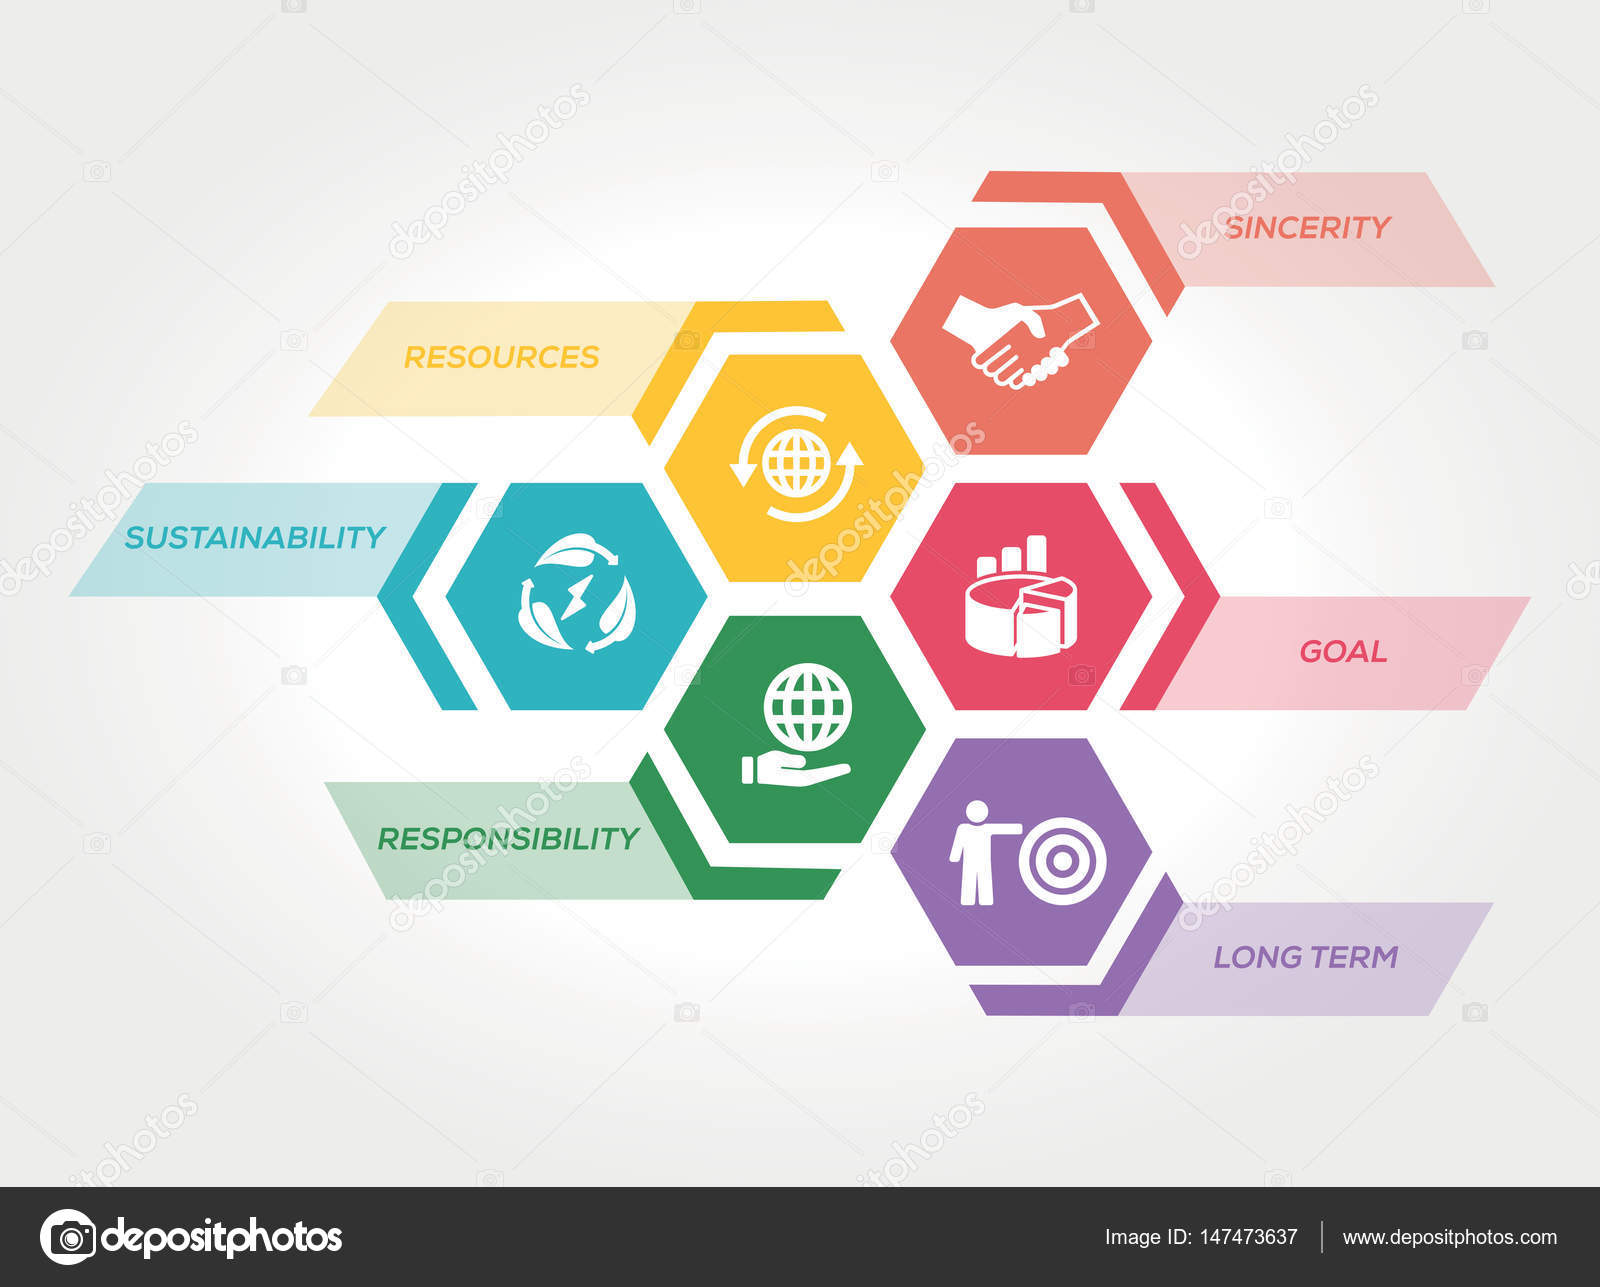 Concept of Corporate Social Responsibility